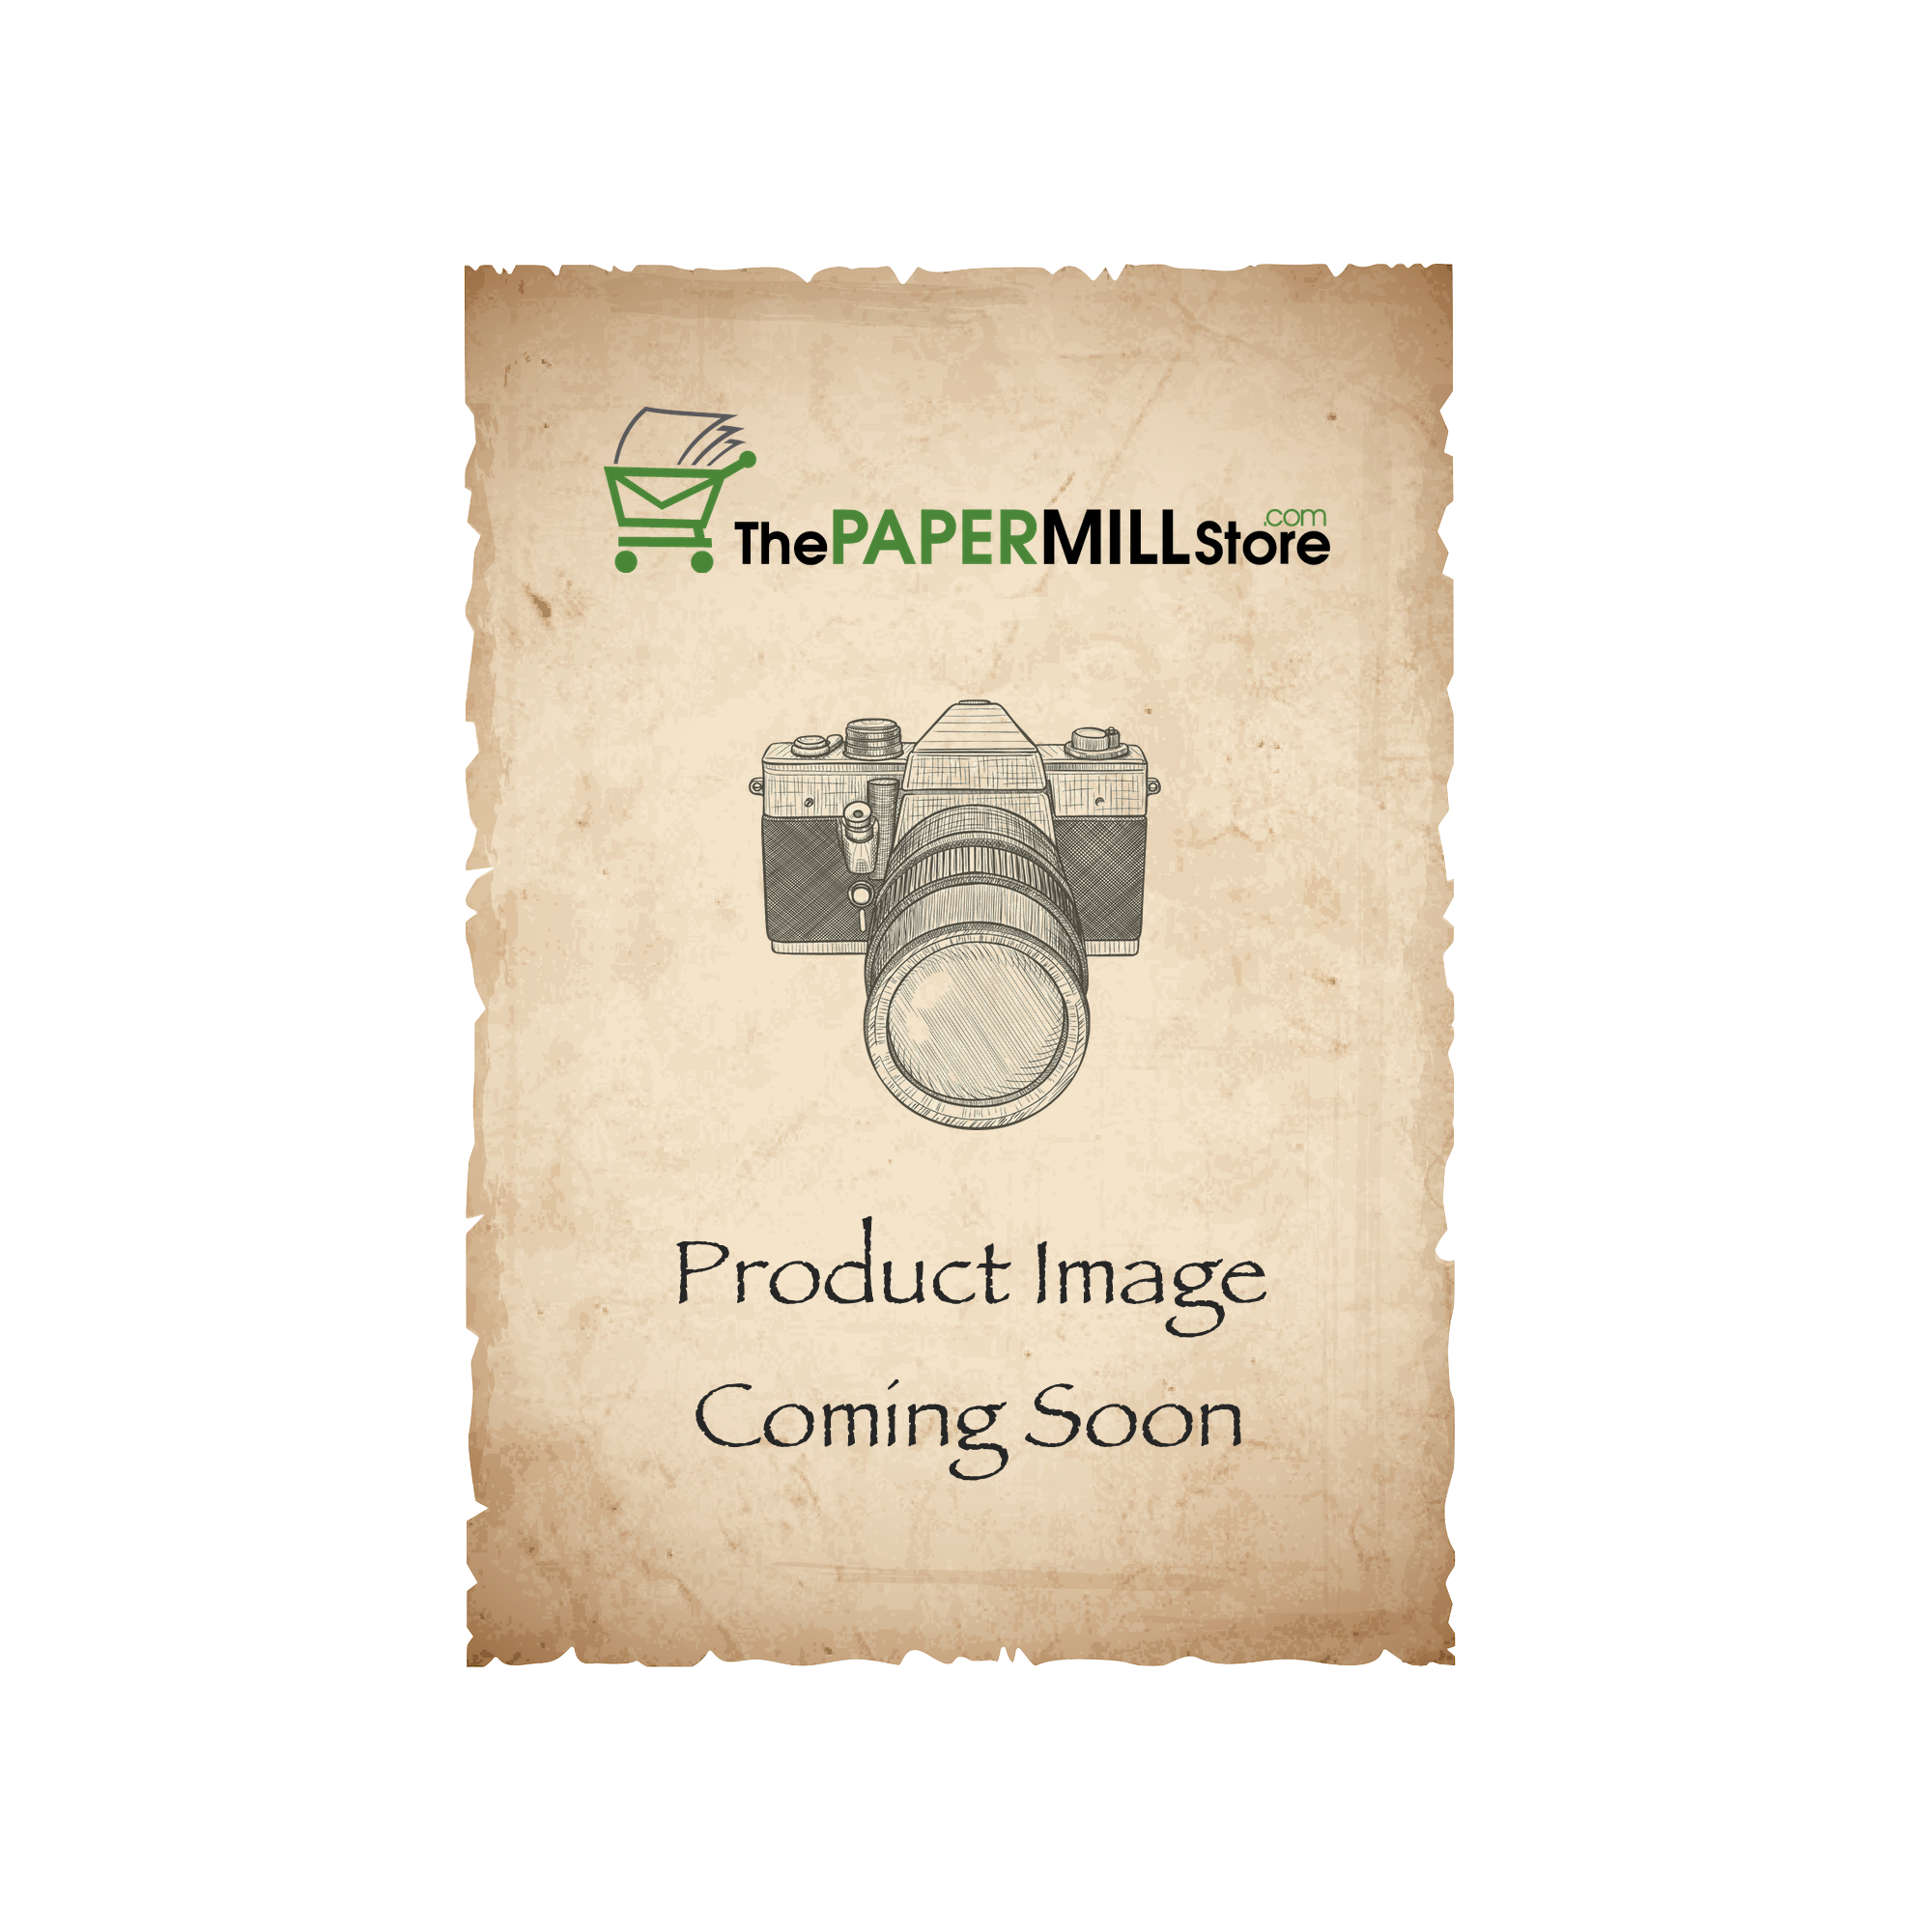 CLASSIC Laid Millstone Paper - 8 1/2 x 11 in 24 lb Writing Imaging Laid Watermarked 500 per Ream